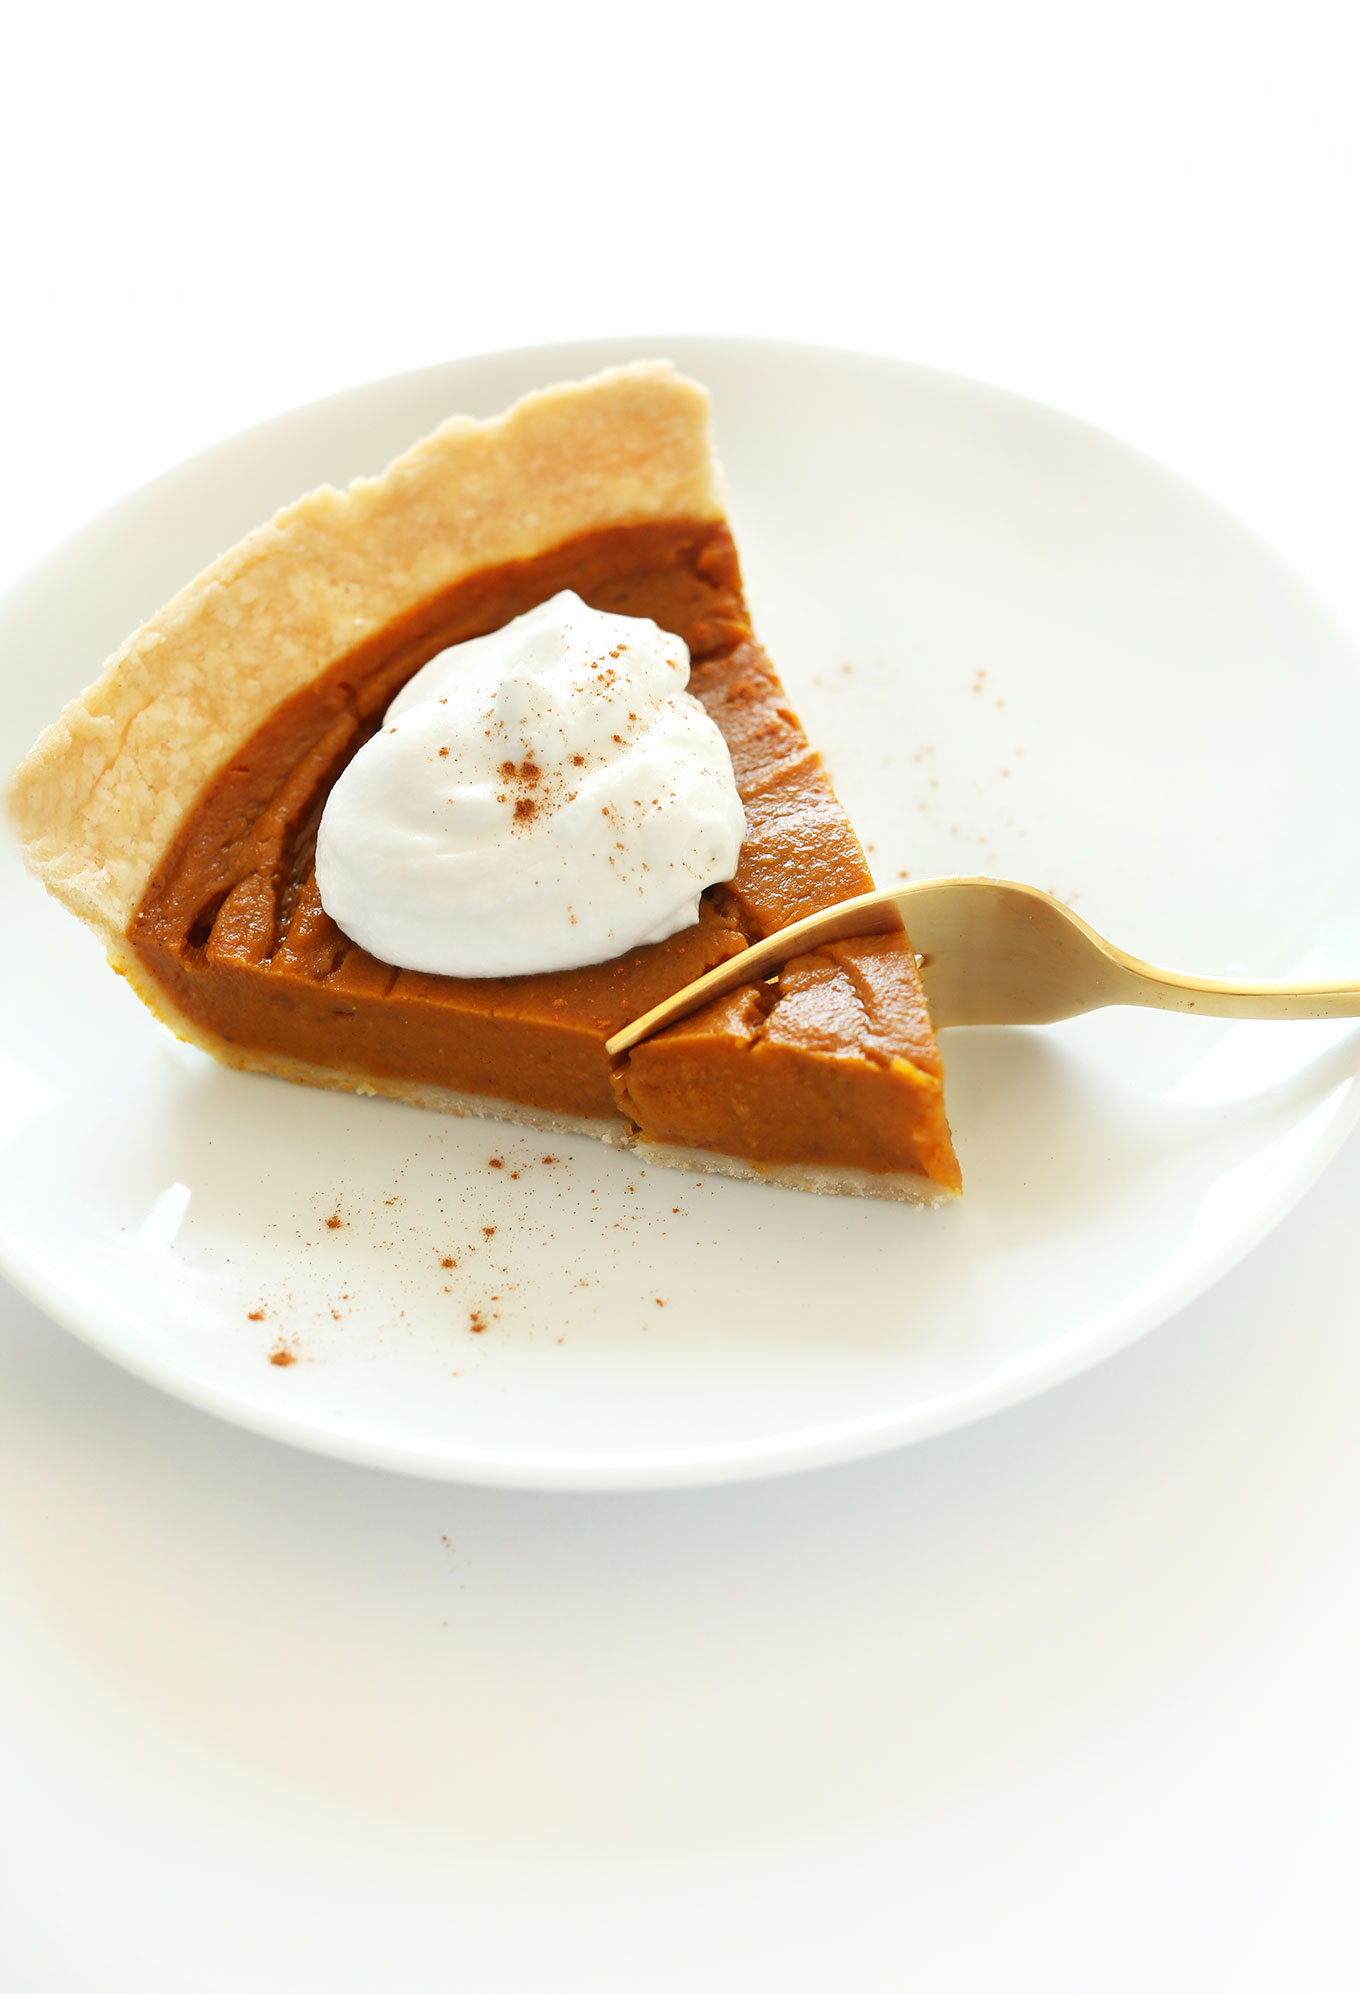 a2b668acd5b369 Grabbing a bite from the tip of a slice of vegan gluten-free pumpkin pie